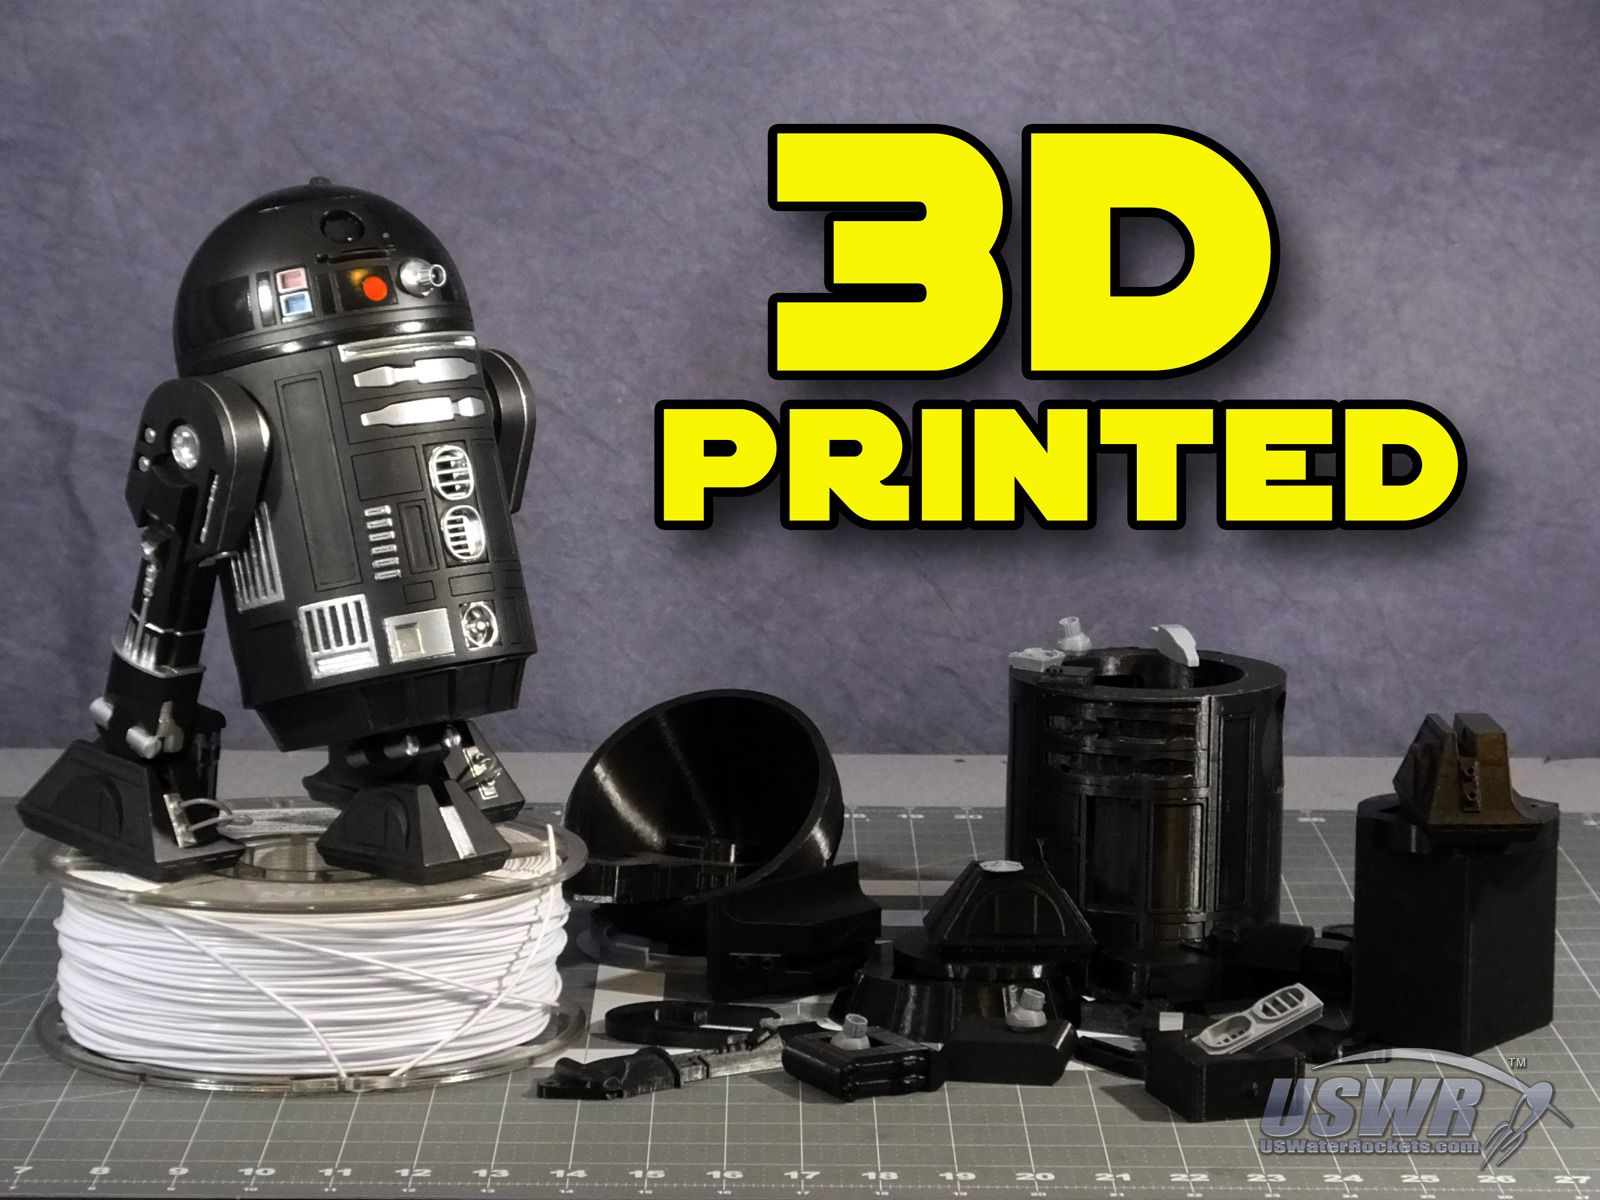 23 Super Cool Star Wars Items From The 3d Printer 3d Make 13 15 3